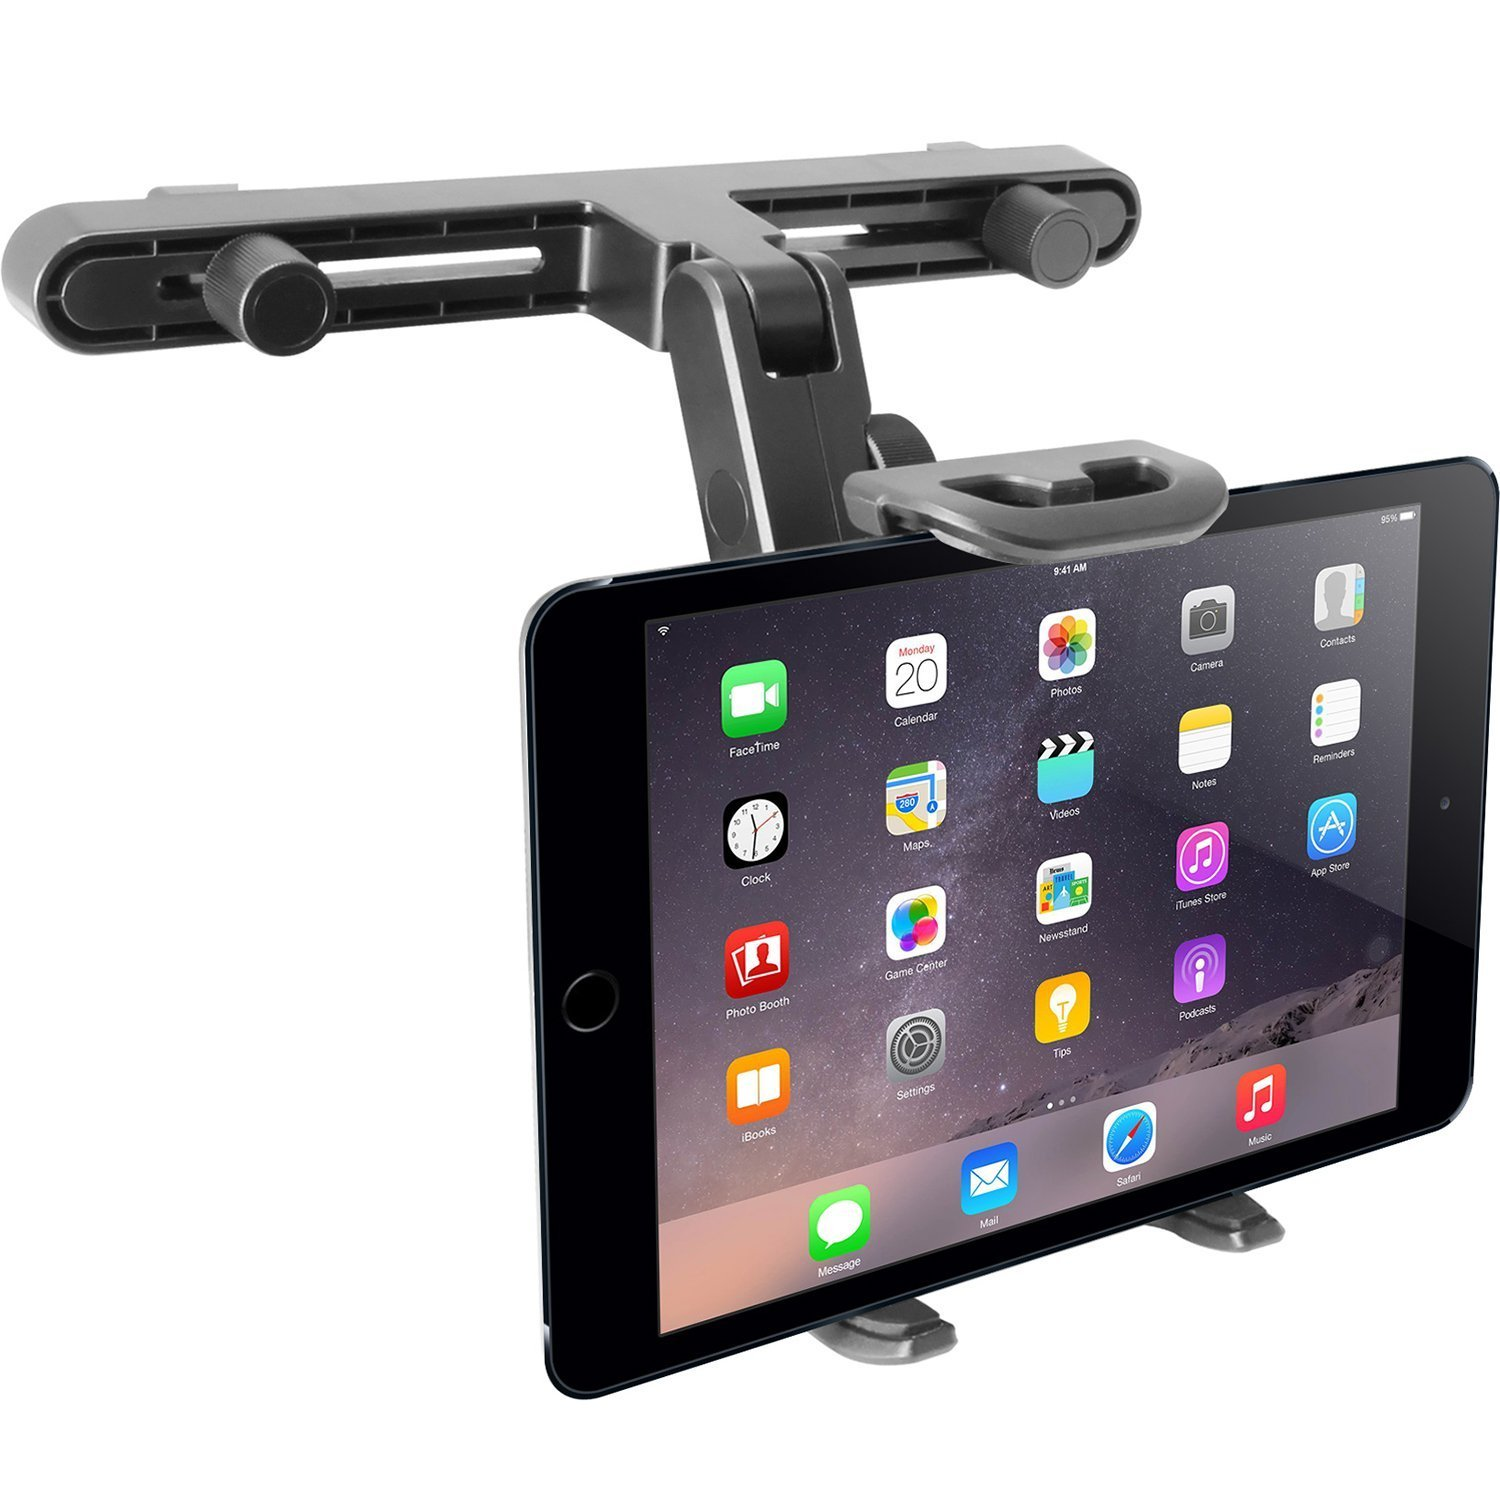 Macally Adjustable Car Seat Headrest Mount and Holder for Apple iPad Air / Mini, Samsung Galaxy Tab, Kindle Fire, Nintendo Switch, and 7'' to 10'' Tablets (HRMOUNT)